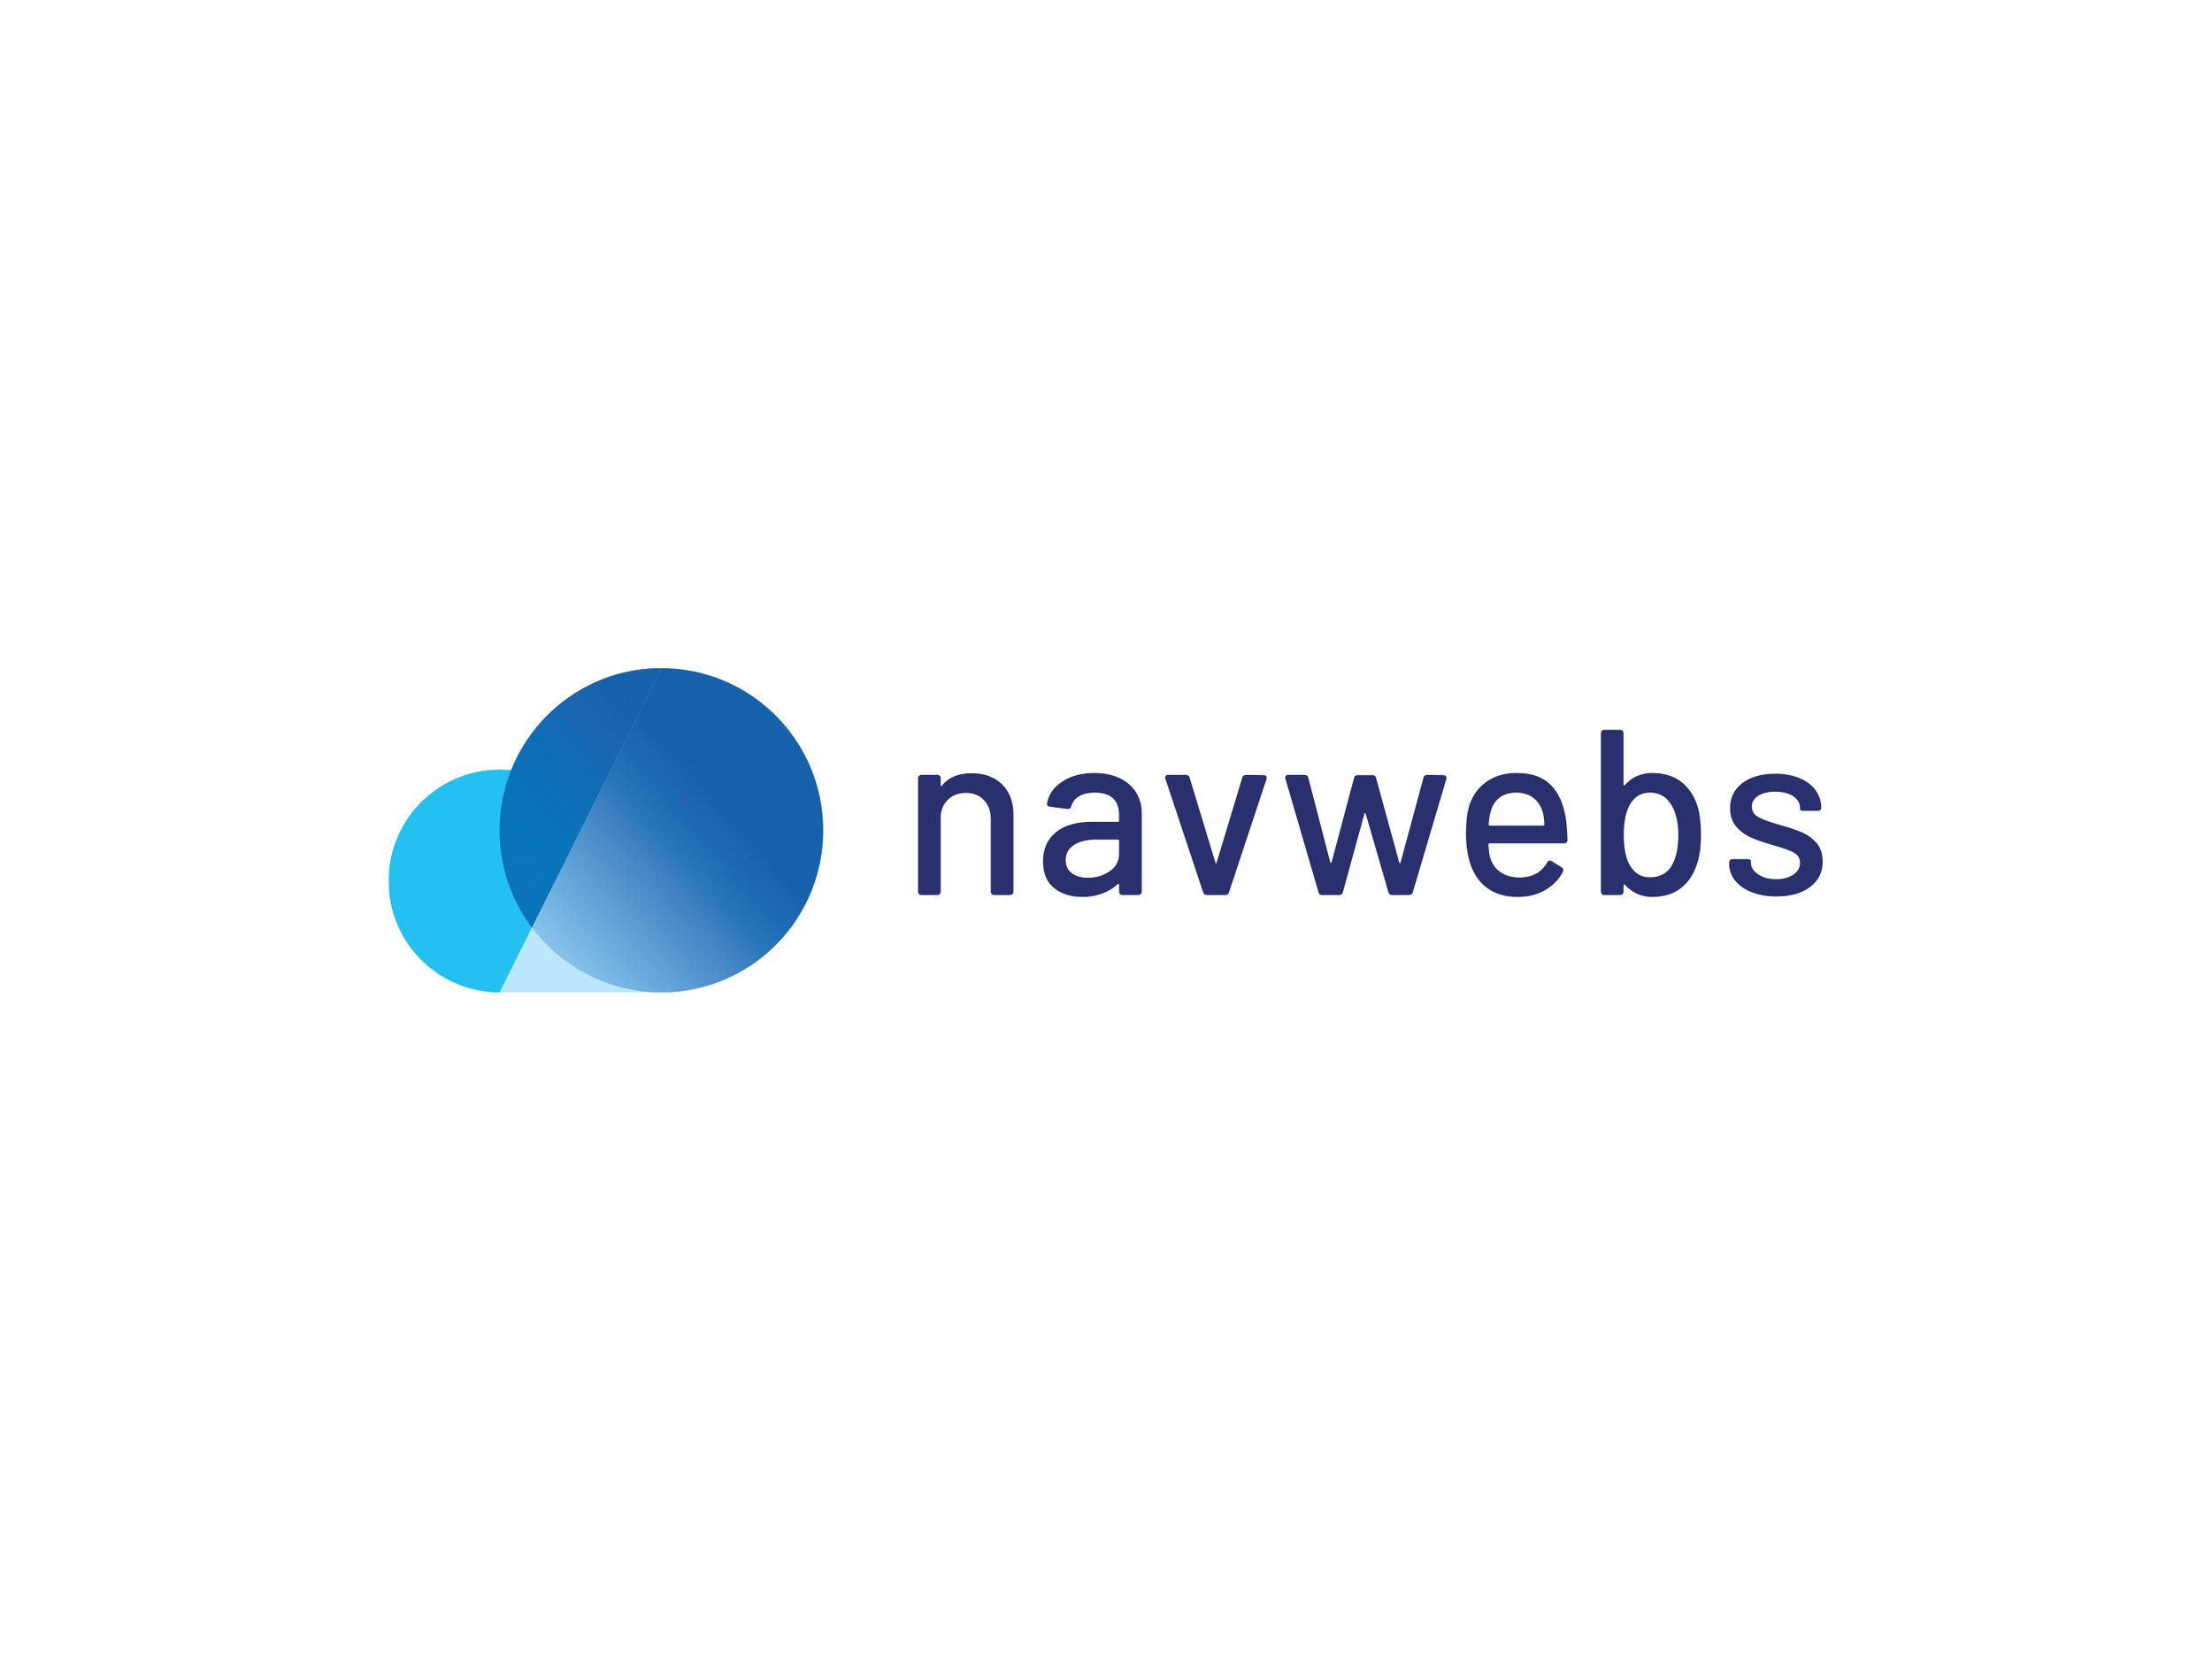 Navwebs-Projectimage-01.jpg